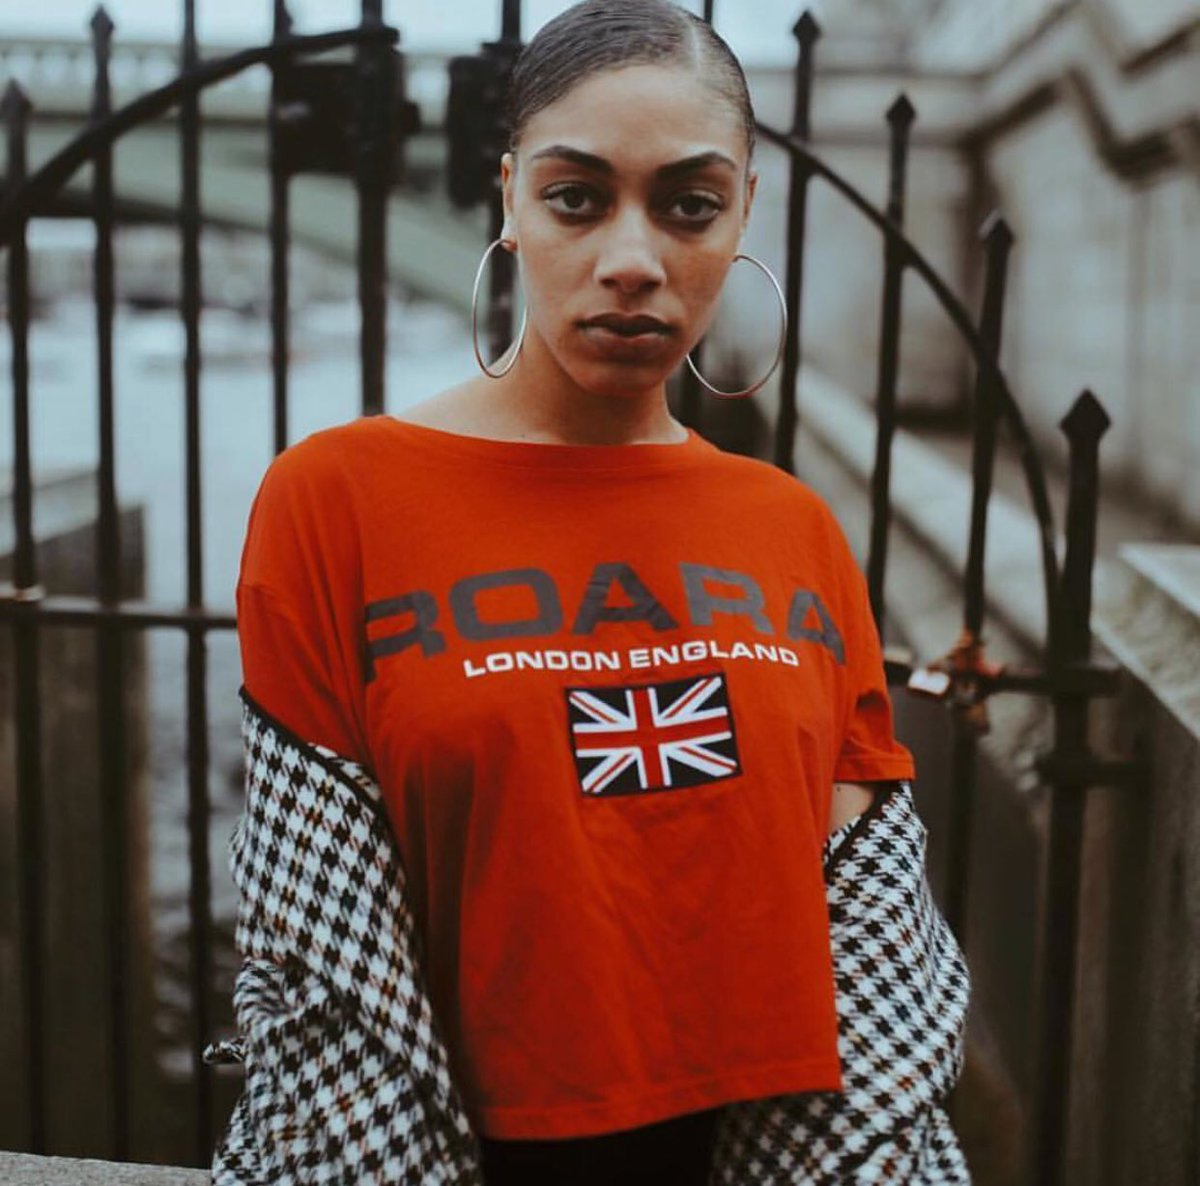 R O A R A Merch. LDN . ???????????????????????????????????????????????????????????????????????????????????????? https://t.co/wK5FiuNh2O